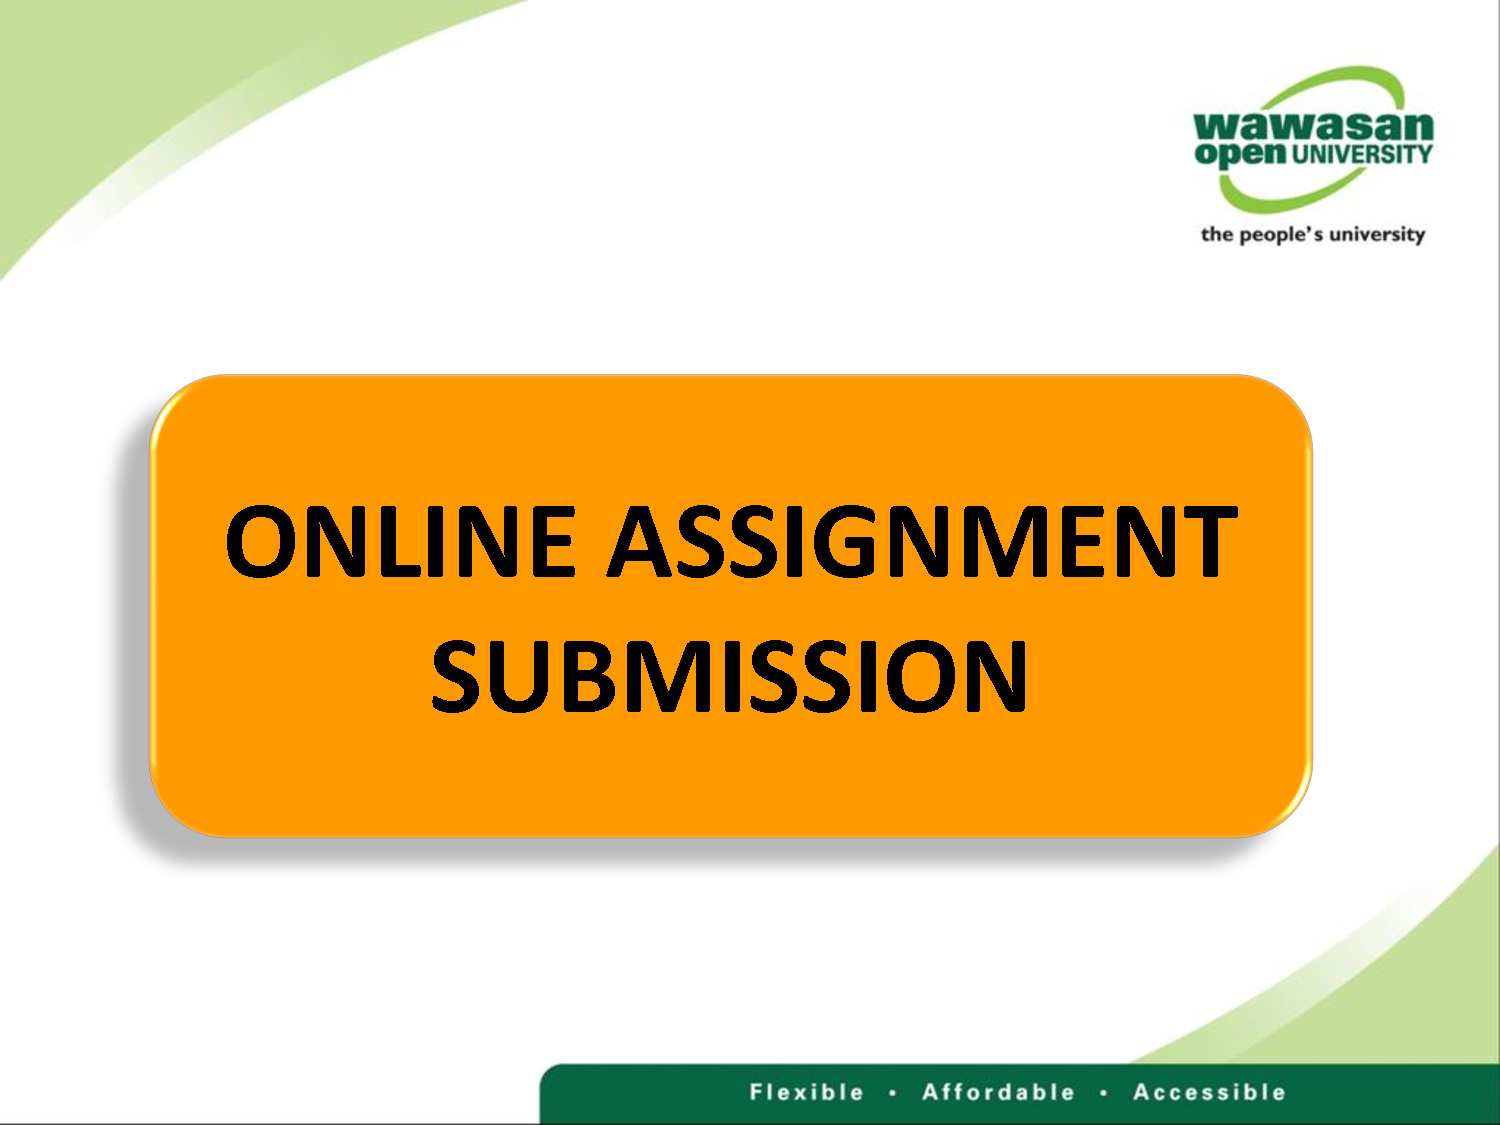 solved assignment in nios open schooling write any write any two reasons responsible for improving the sex ratio since 2001